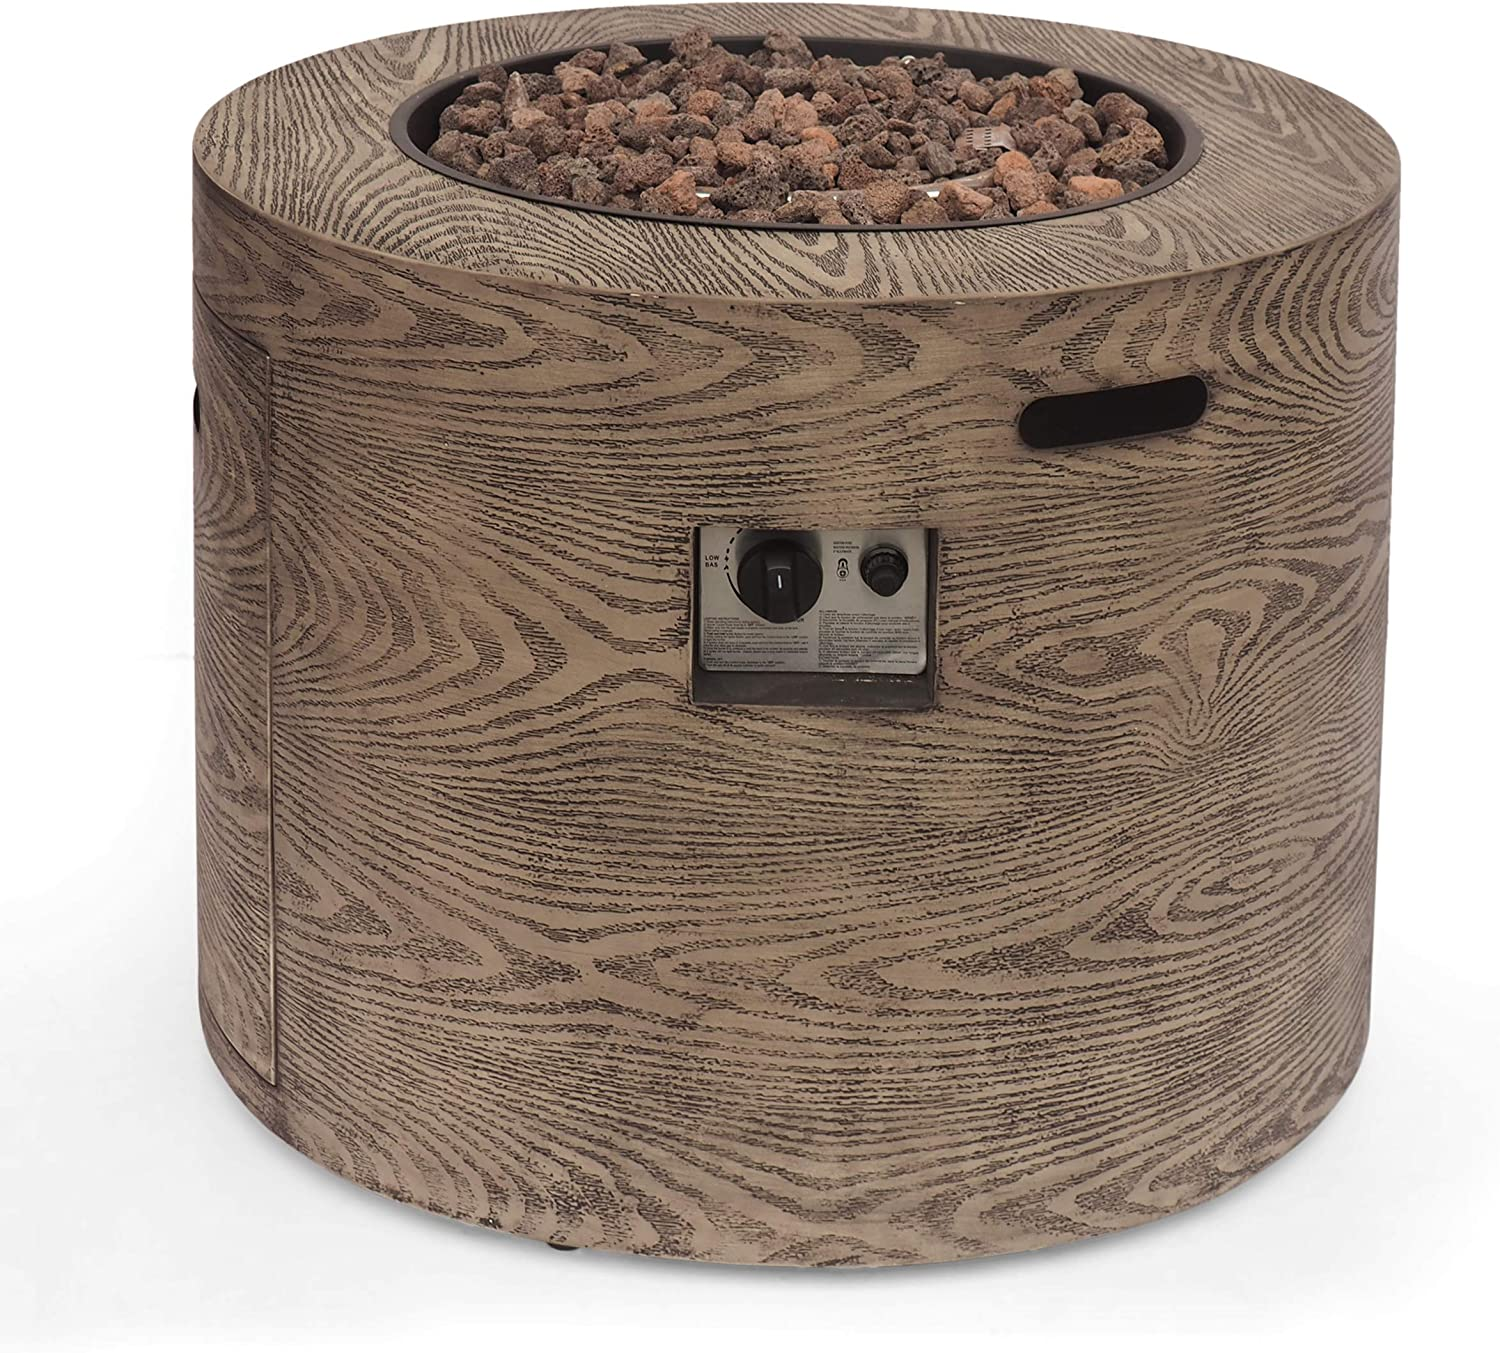 Christopher Knight Home 314046 Senoia Outdoor FIRE Pit, Wood Pattern Brown